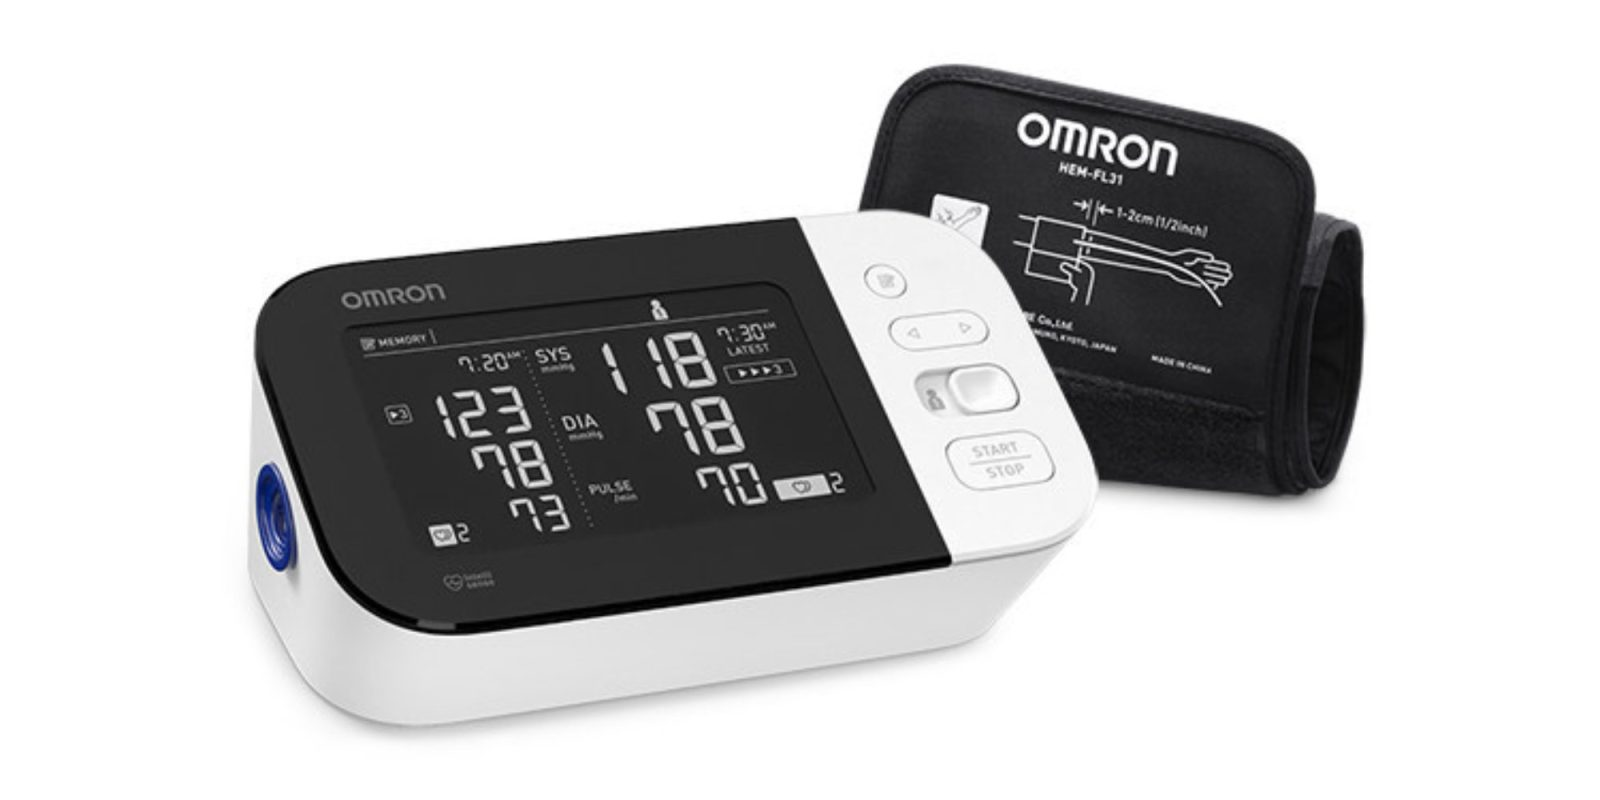 Omron refreshes its Apple Health-compatible blood pressure monitor lineup